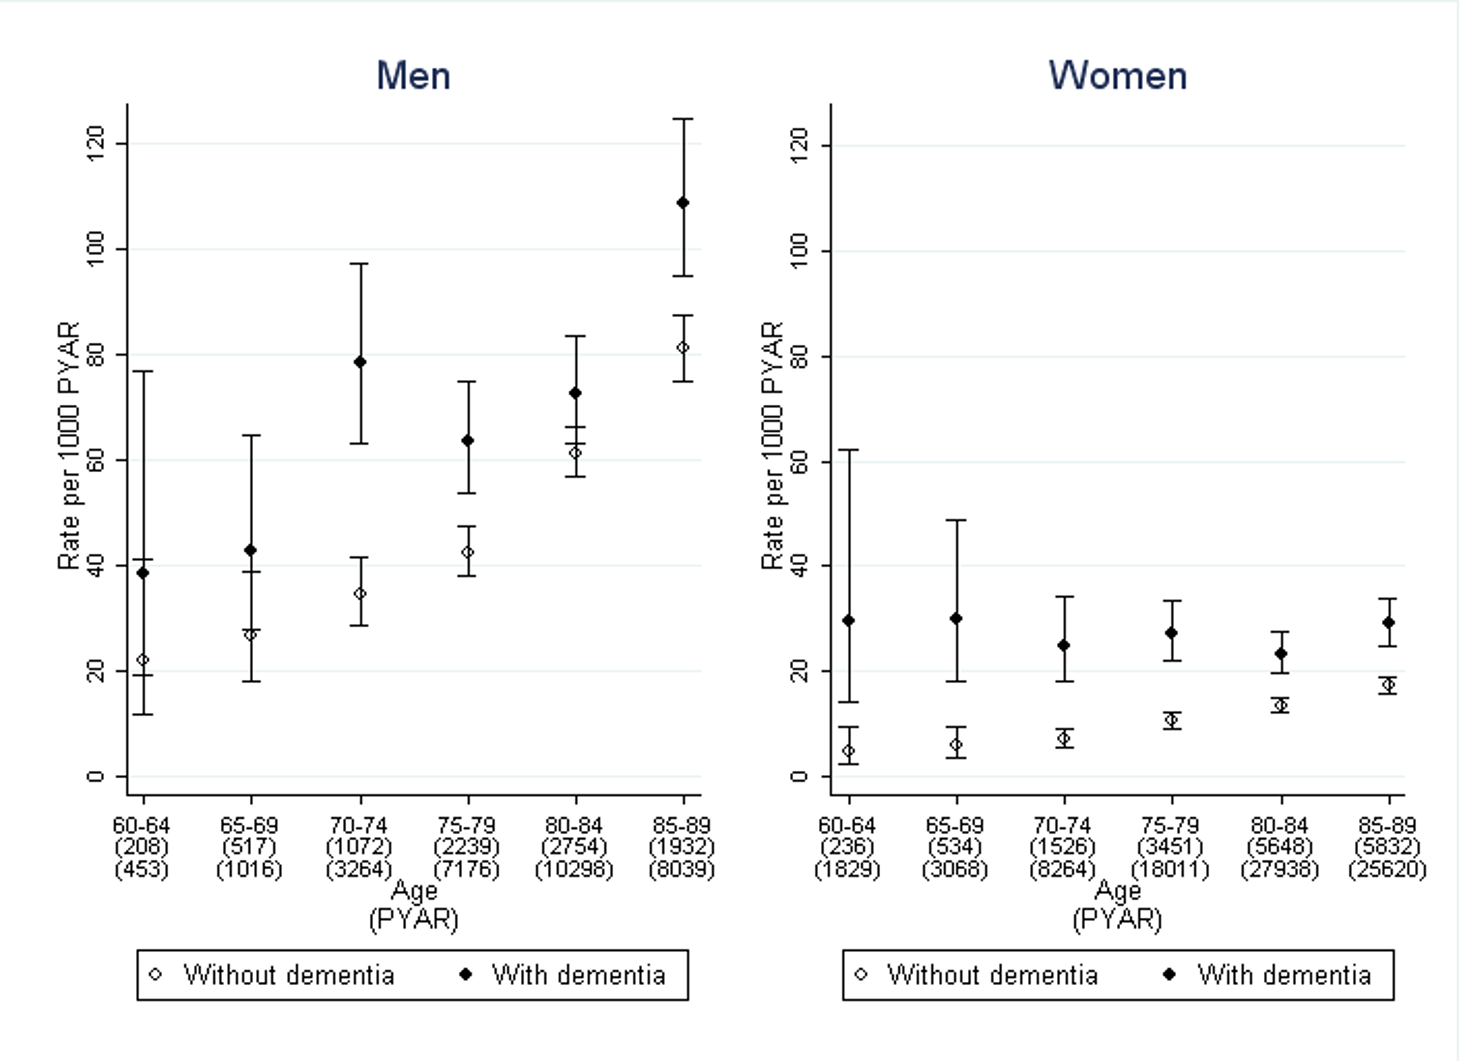 Rate of first use of prolonged indwelling urinary catheterisation in men and women with dementia compared to those without.